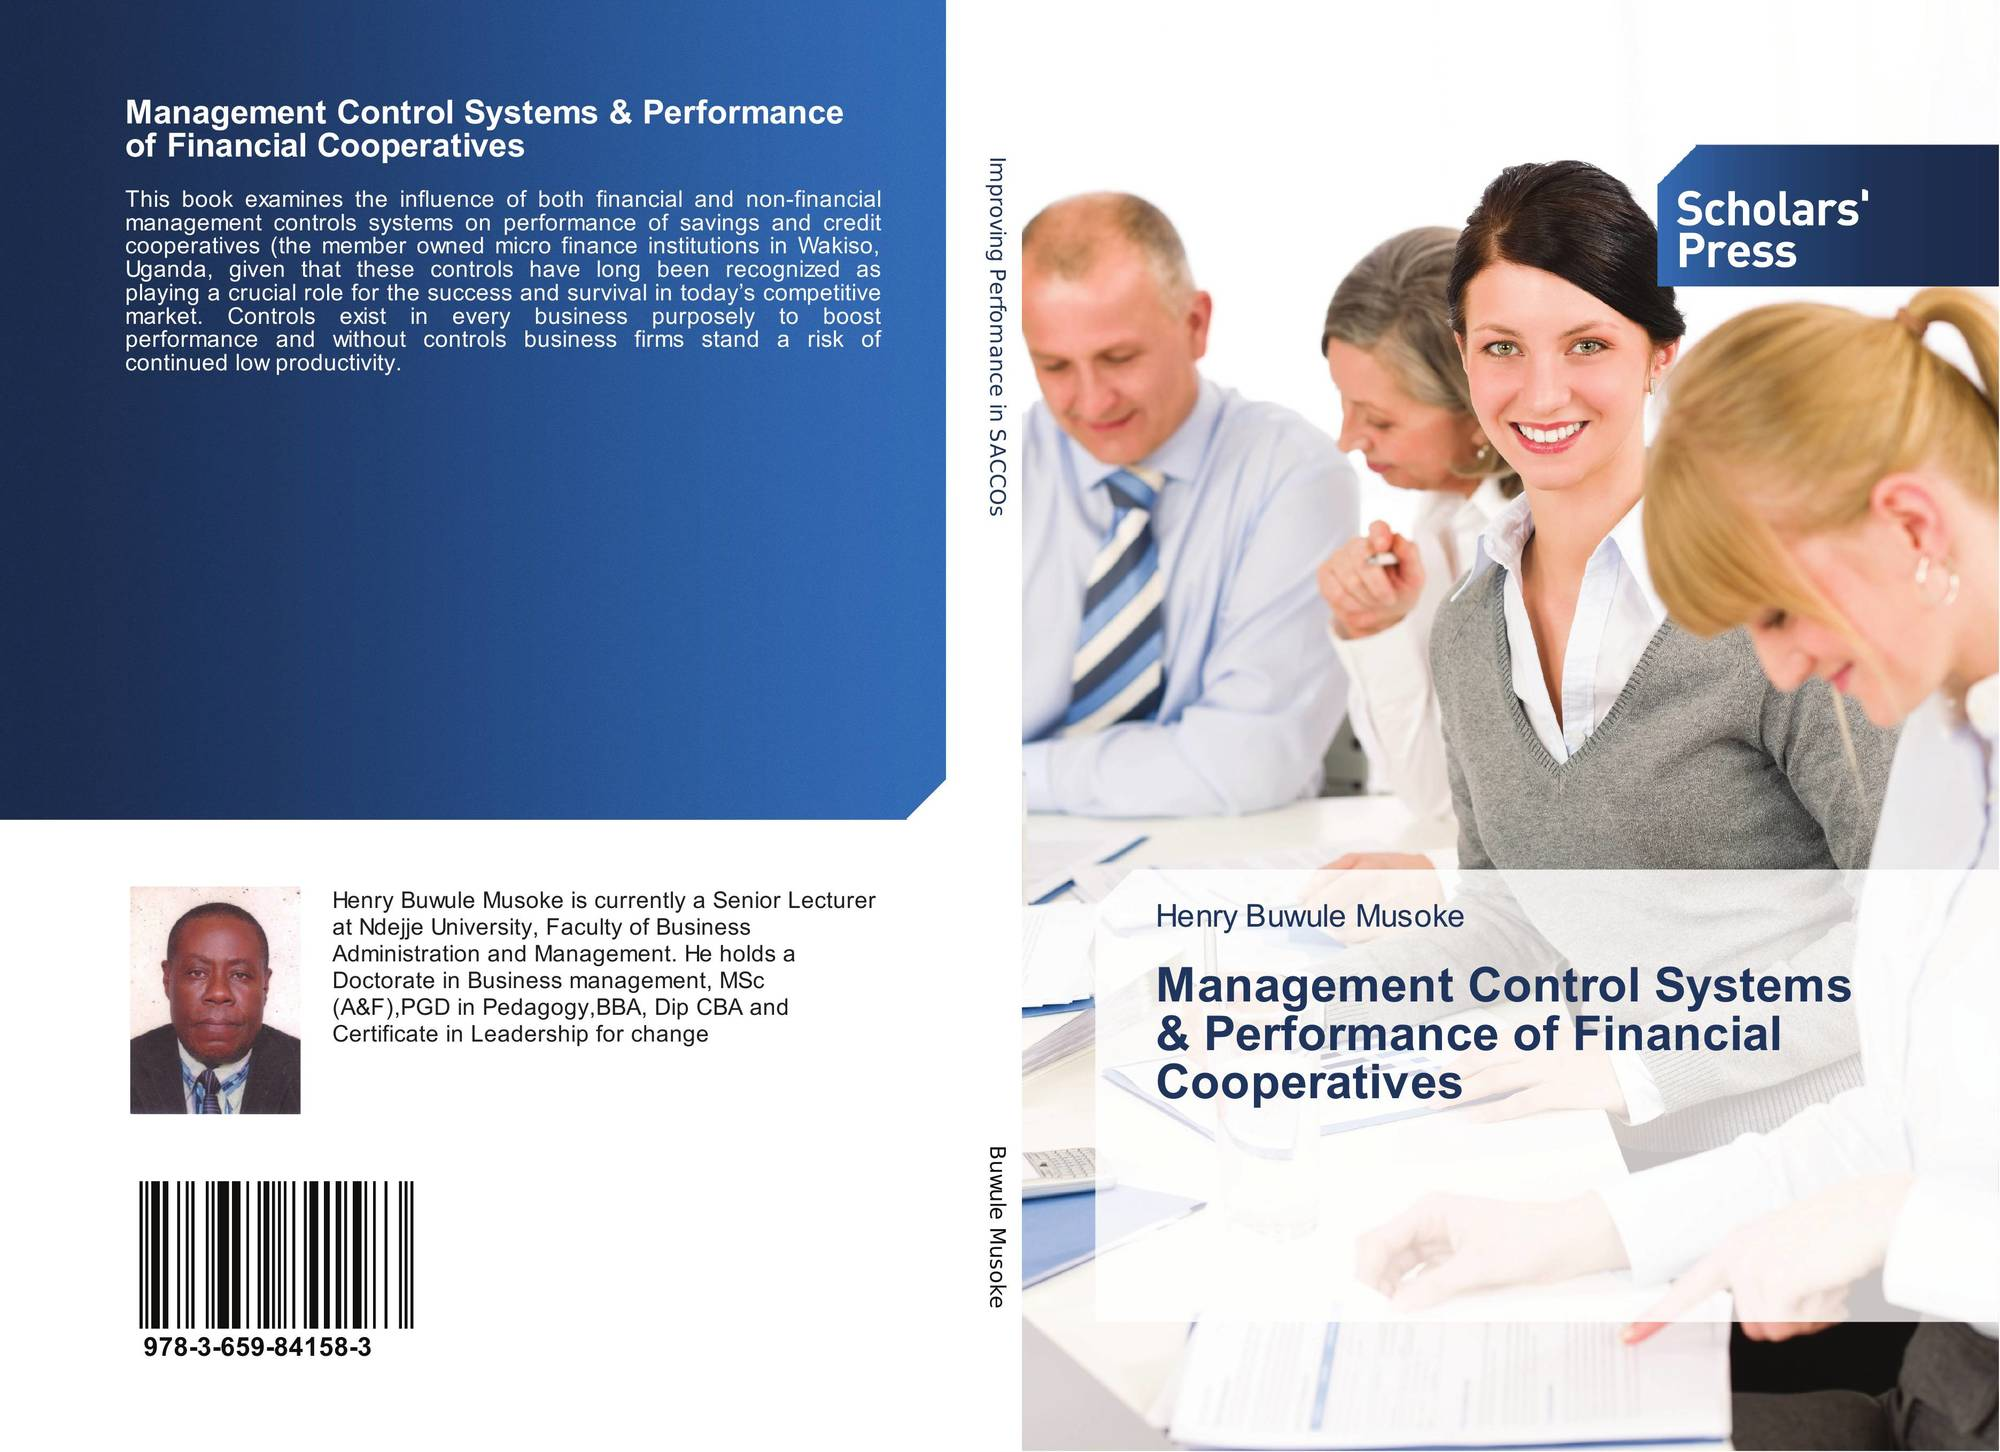 mangement control systems Understanding the outcomes of various elements of management control systems (mcs) will help us to better focus the analysis of mcs packages find out more.